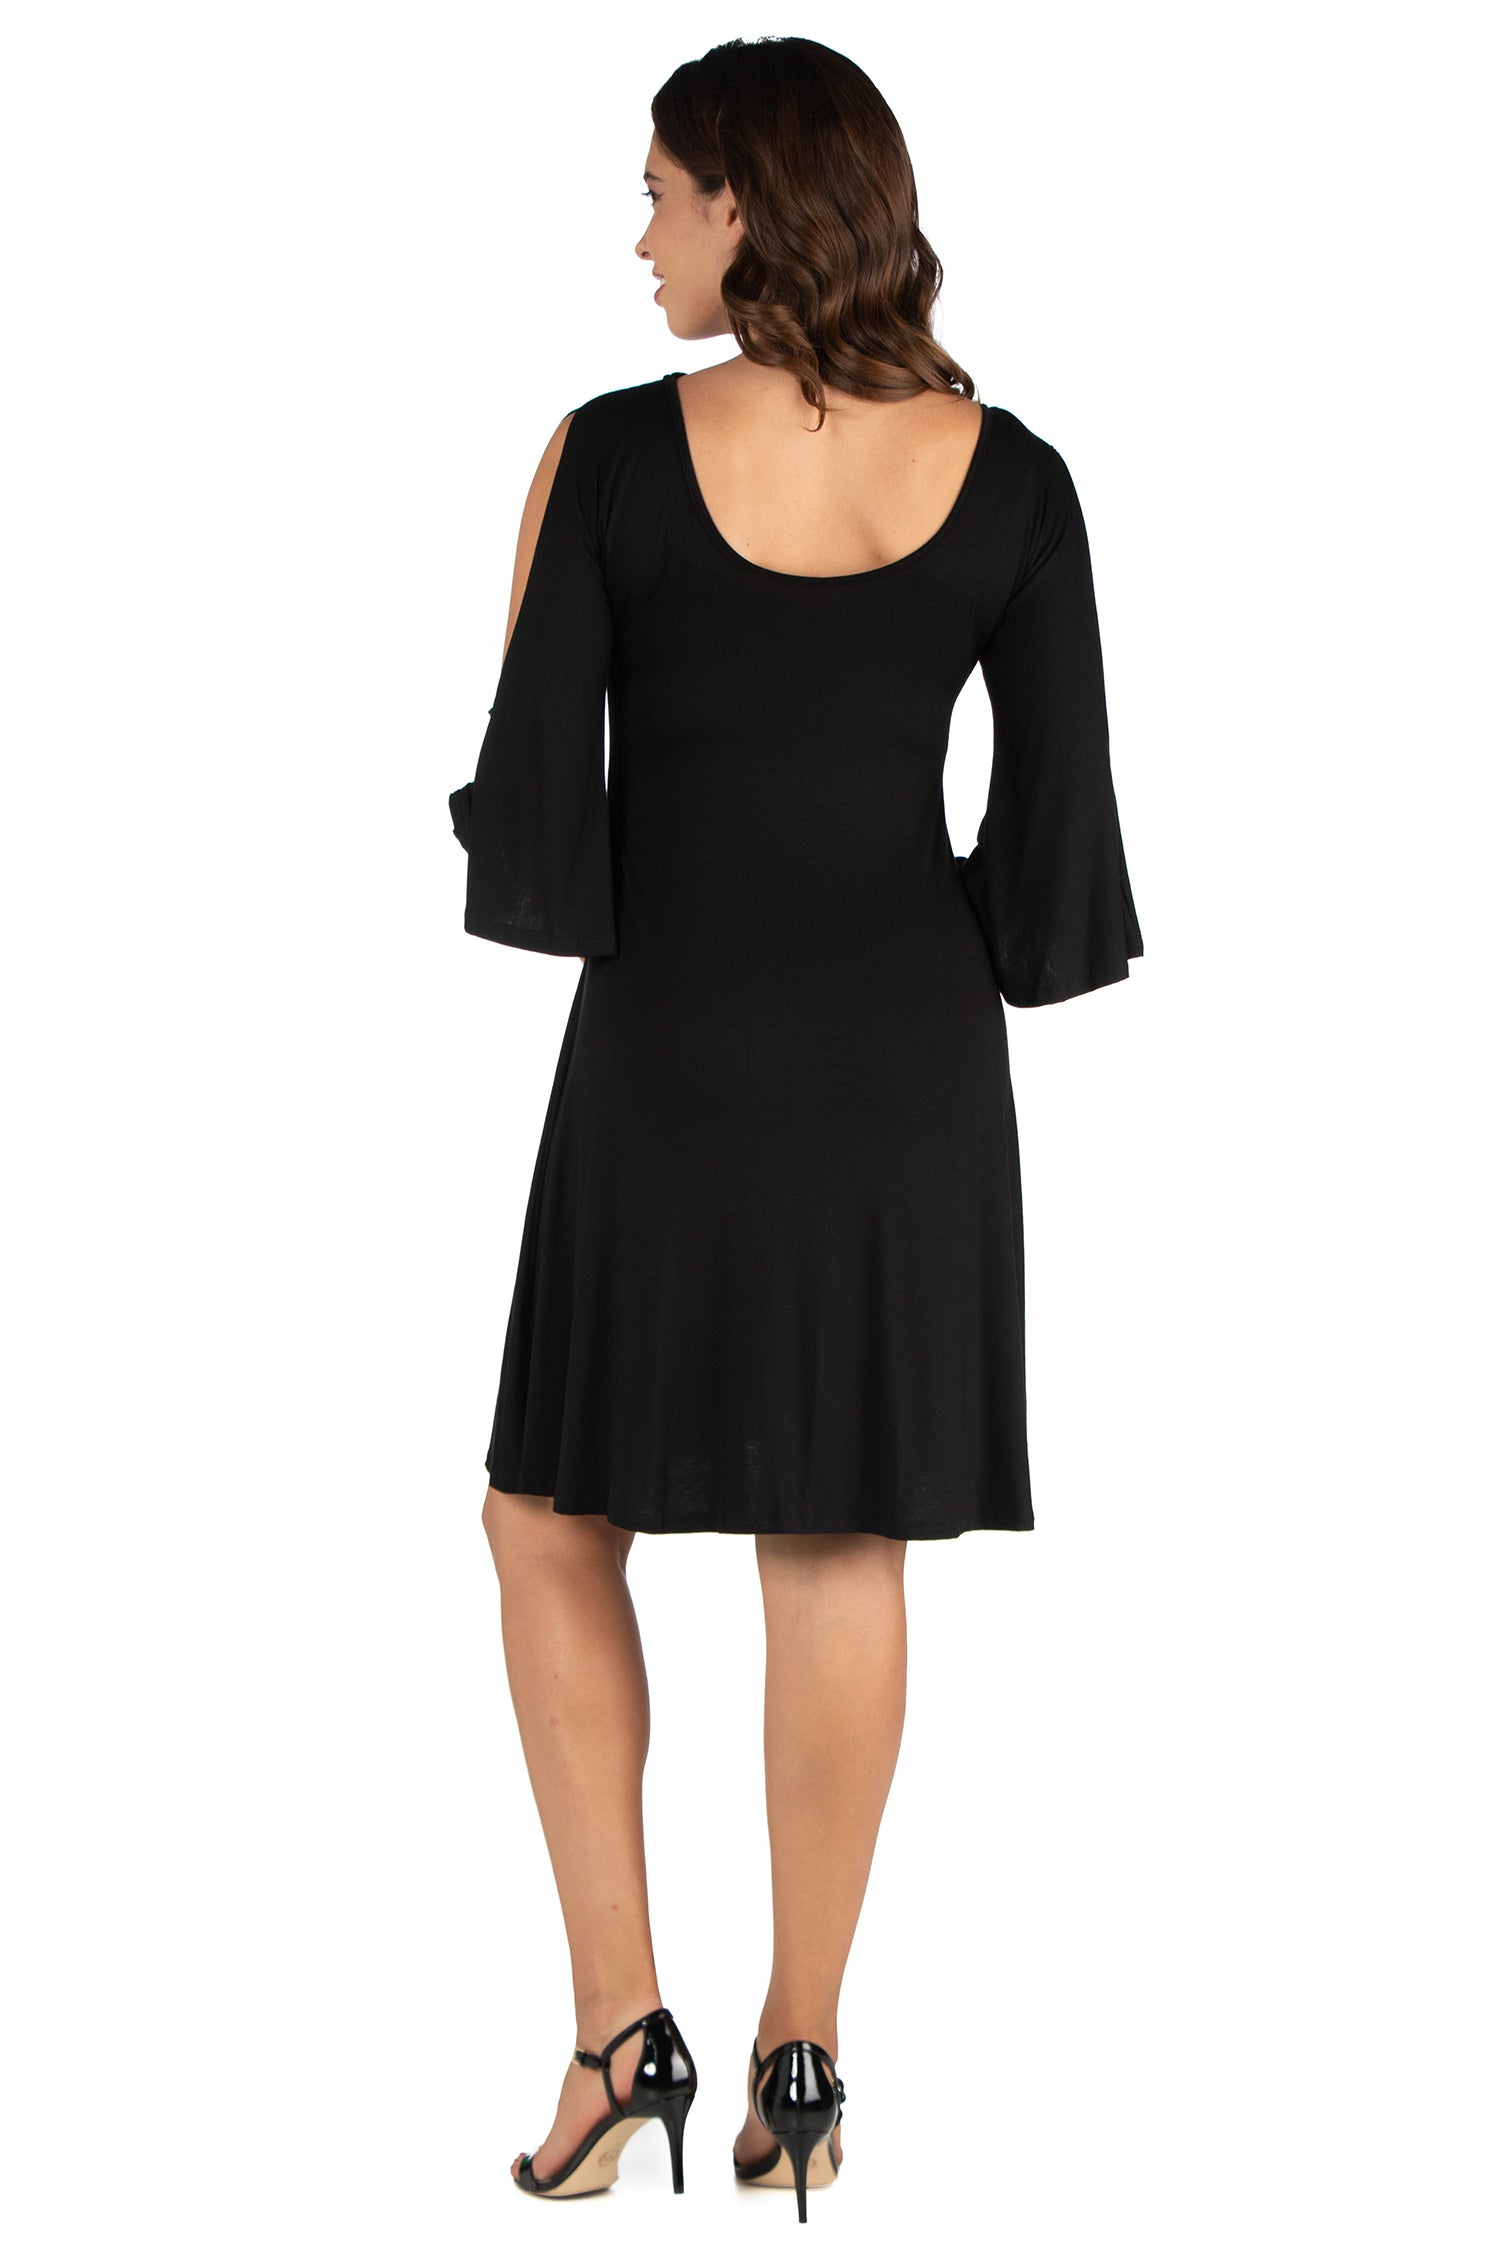 24seven Comfort Apparel Criss Cross Neckline Cold Shoulder Maternity Dress-DRESSES-24Seven Comfort Apparel-BLACK-S-24/7 Comfort Apparel